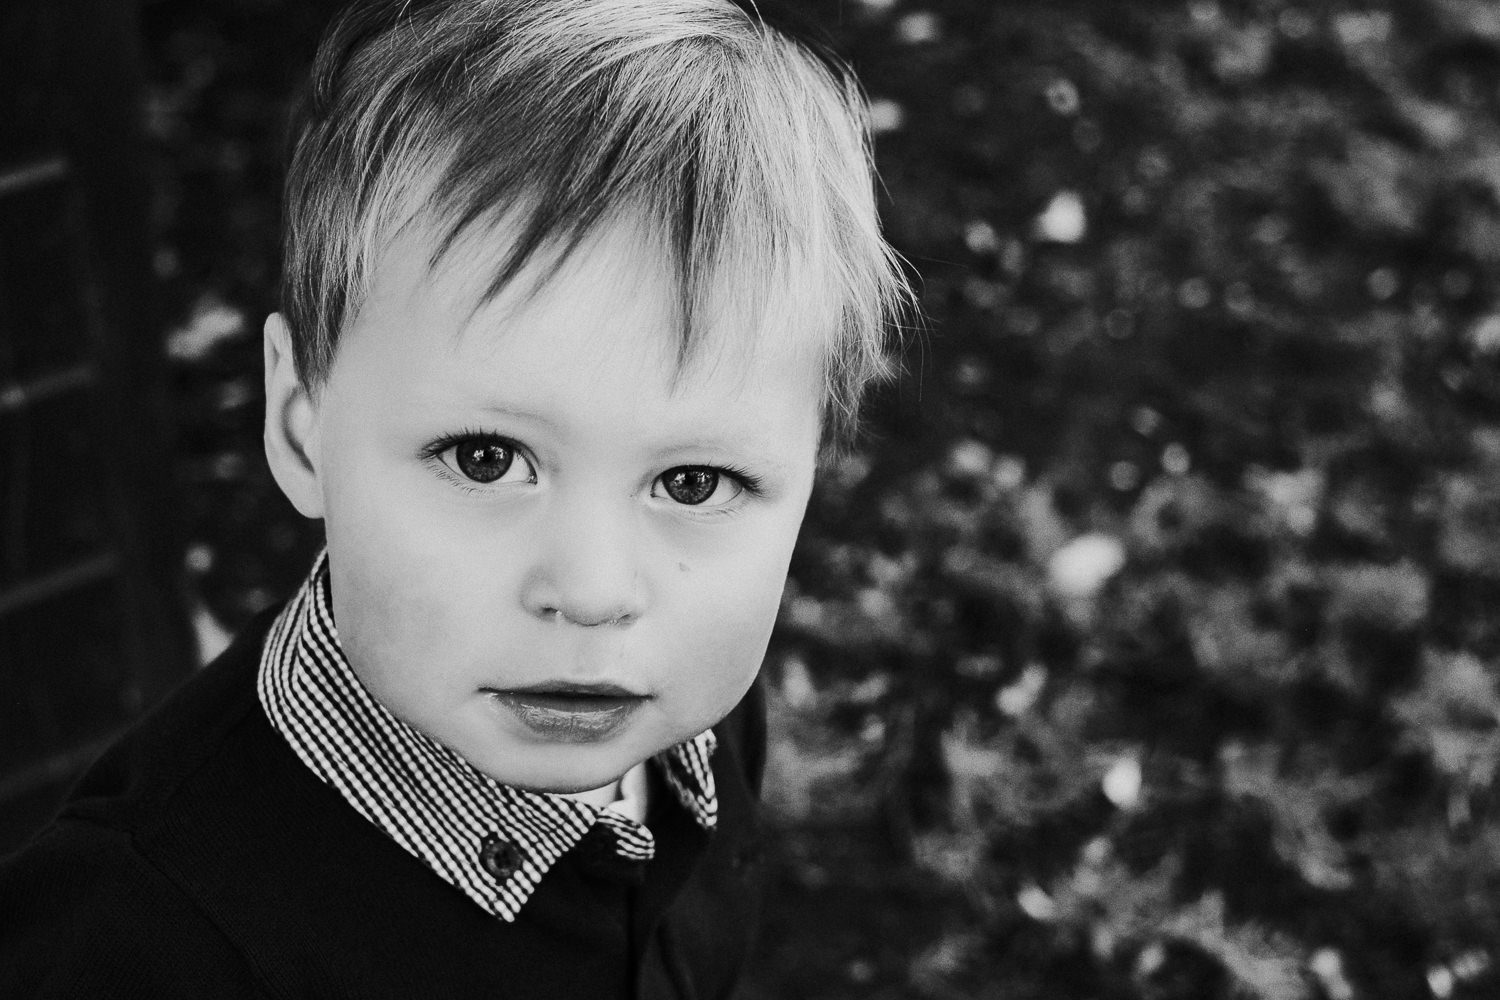 notting hill family photographer black and white close up photo of face of toddler boy